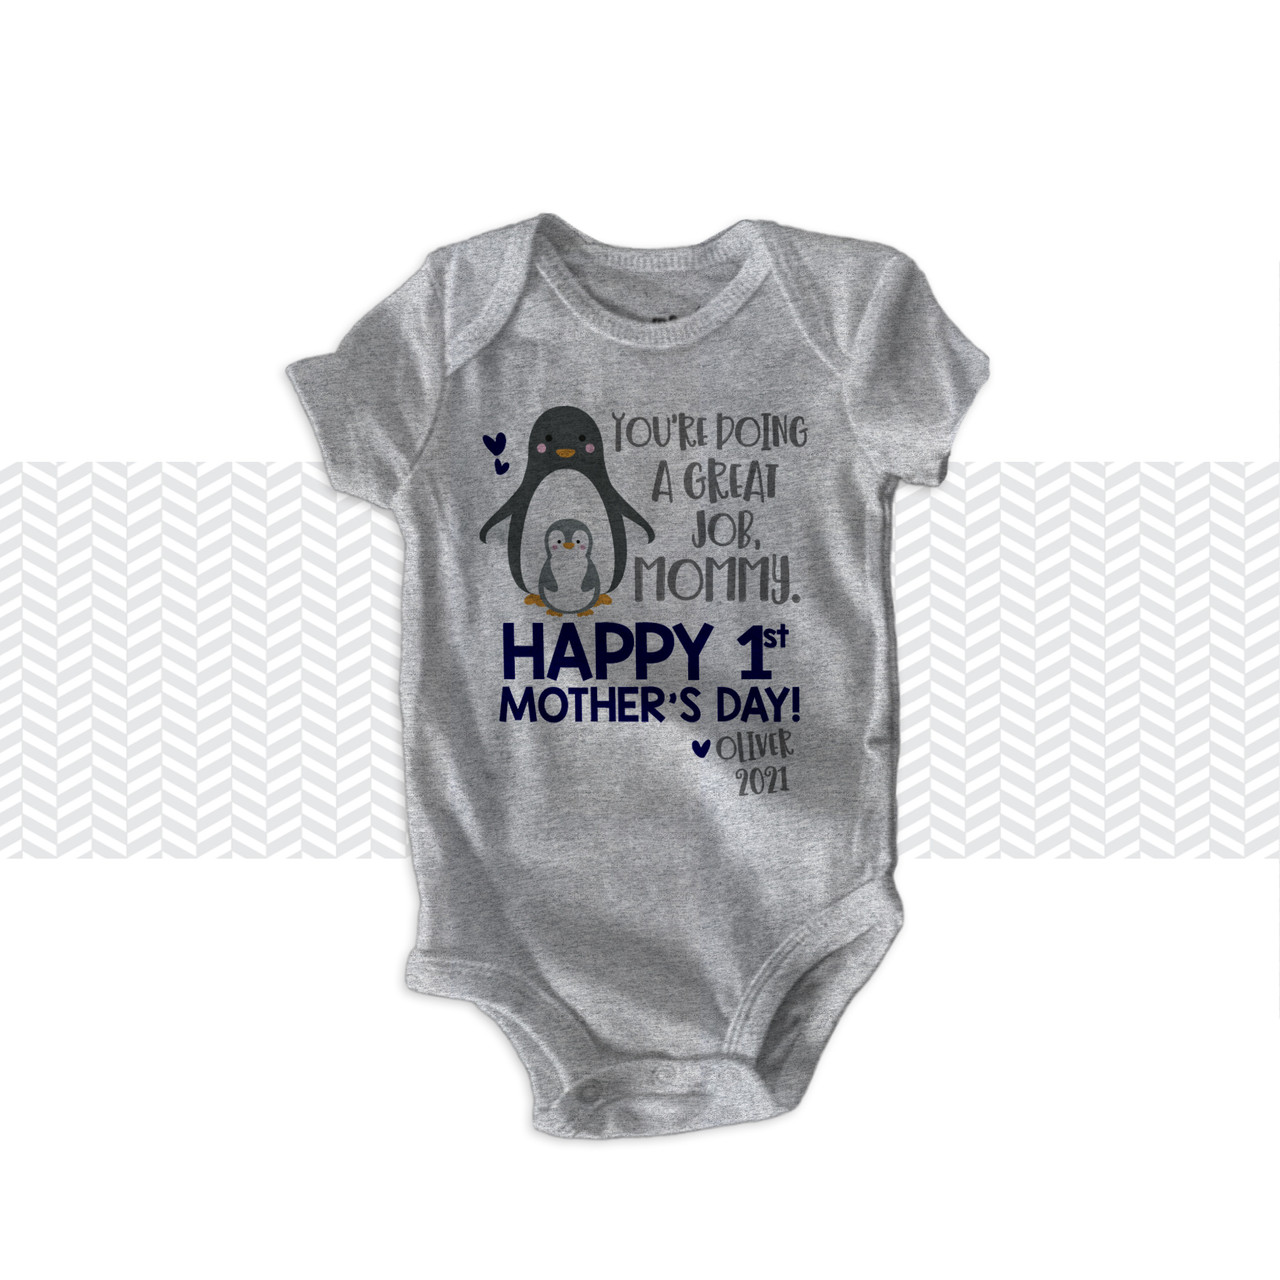 Mother/'s Day 1st Mother/'s Day Gift Personalized First Mother/'s Day Gift First Mother/'s Day bodysuit Elephant bodysuit